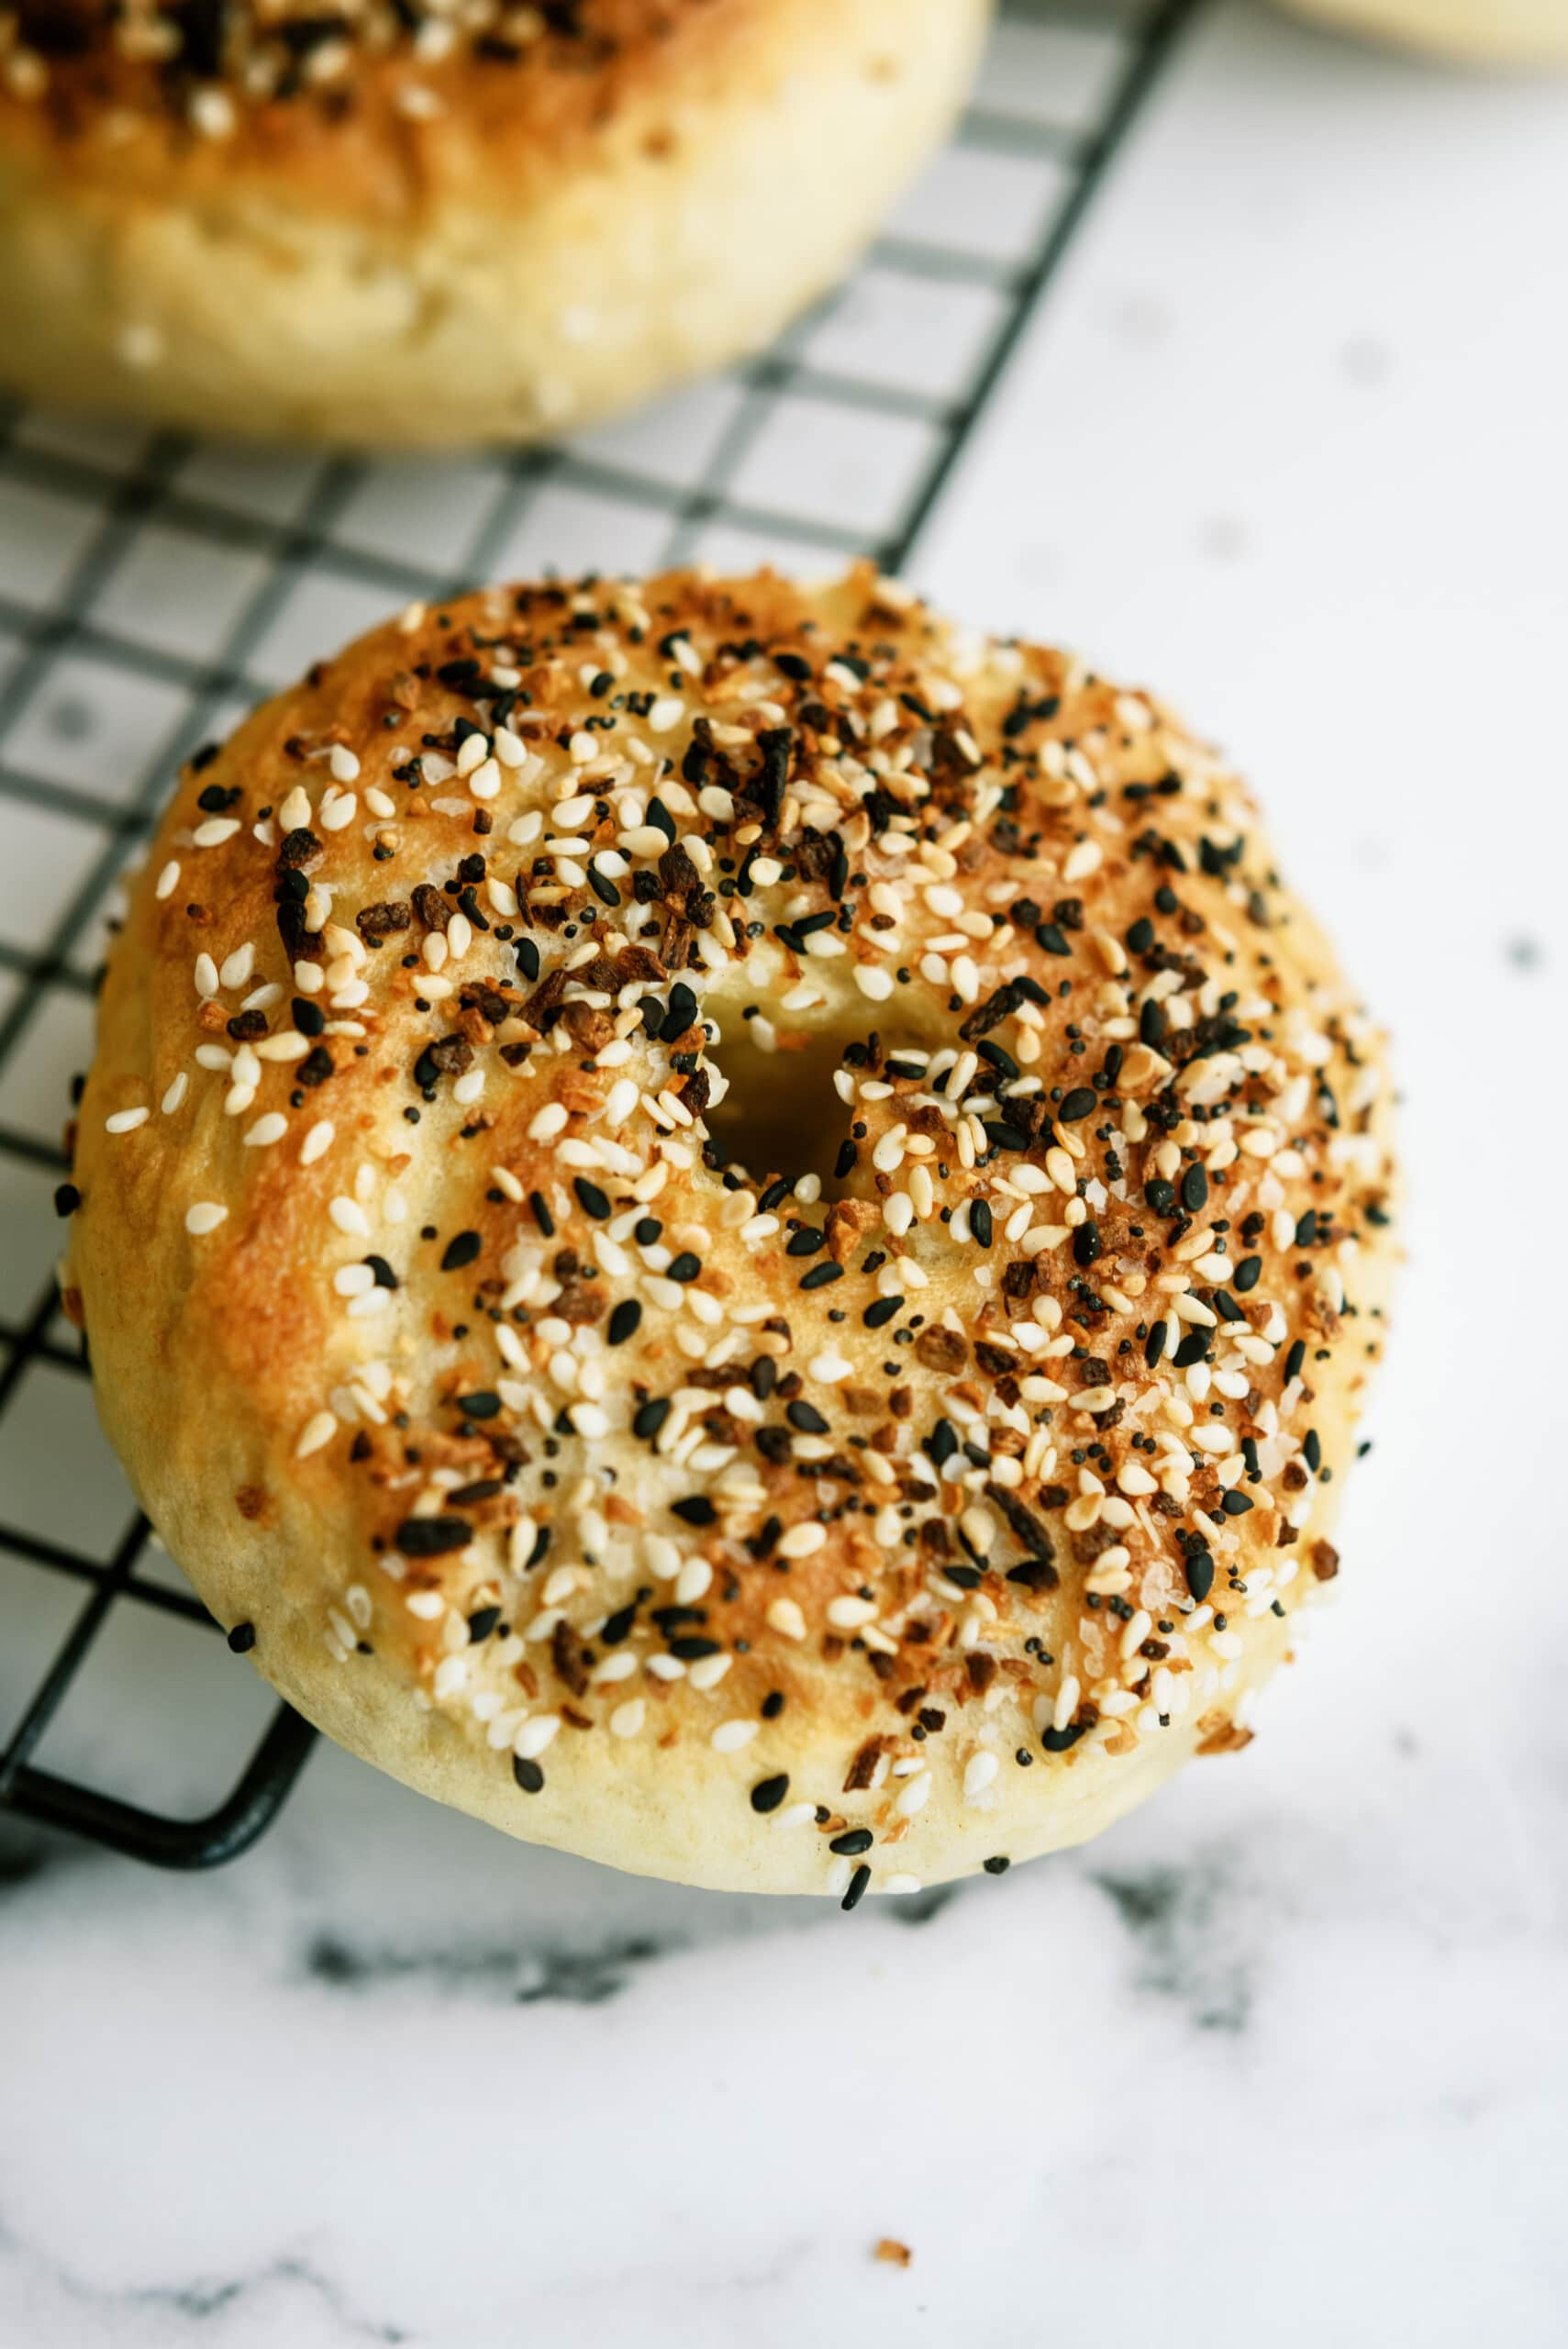 close up of a bagel with sesame seeds on it